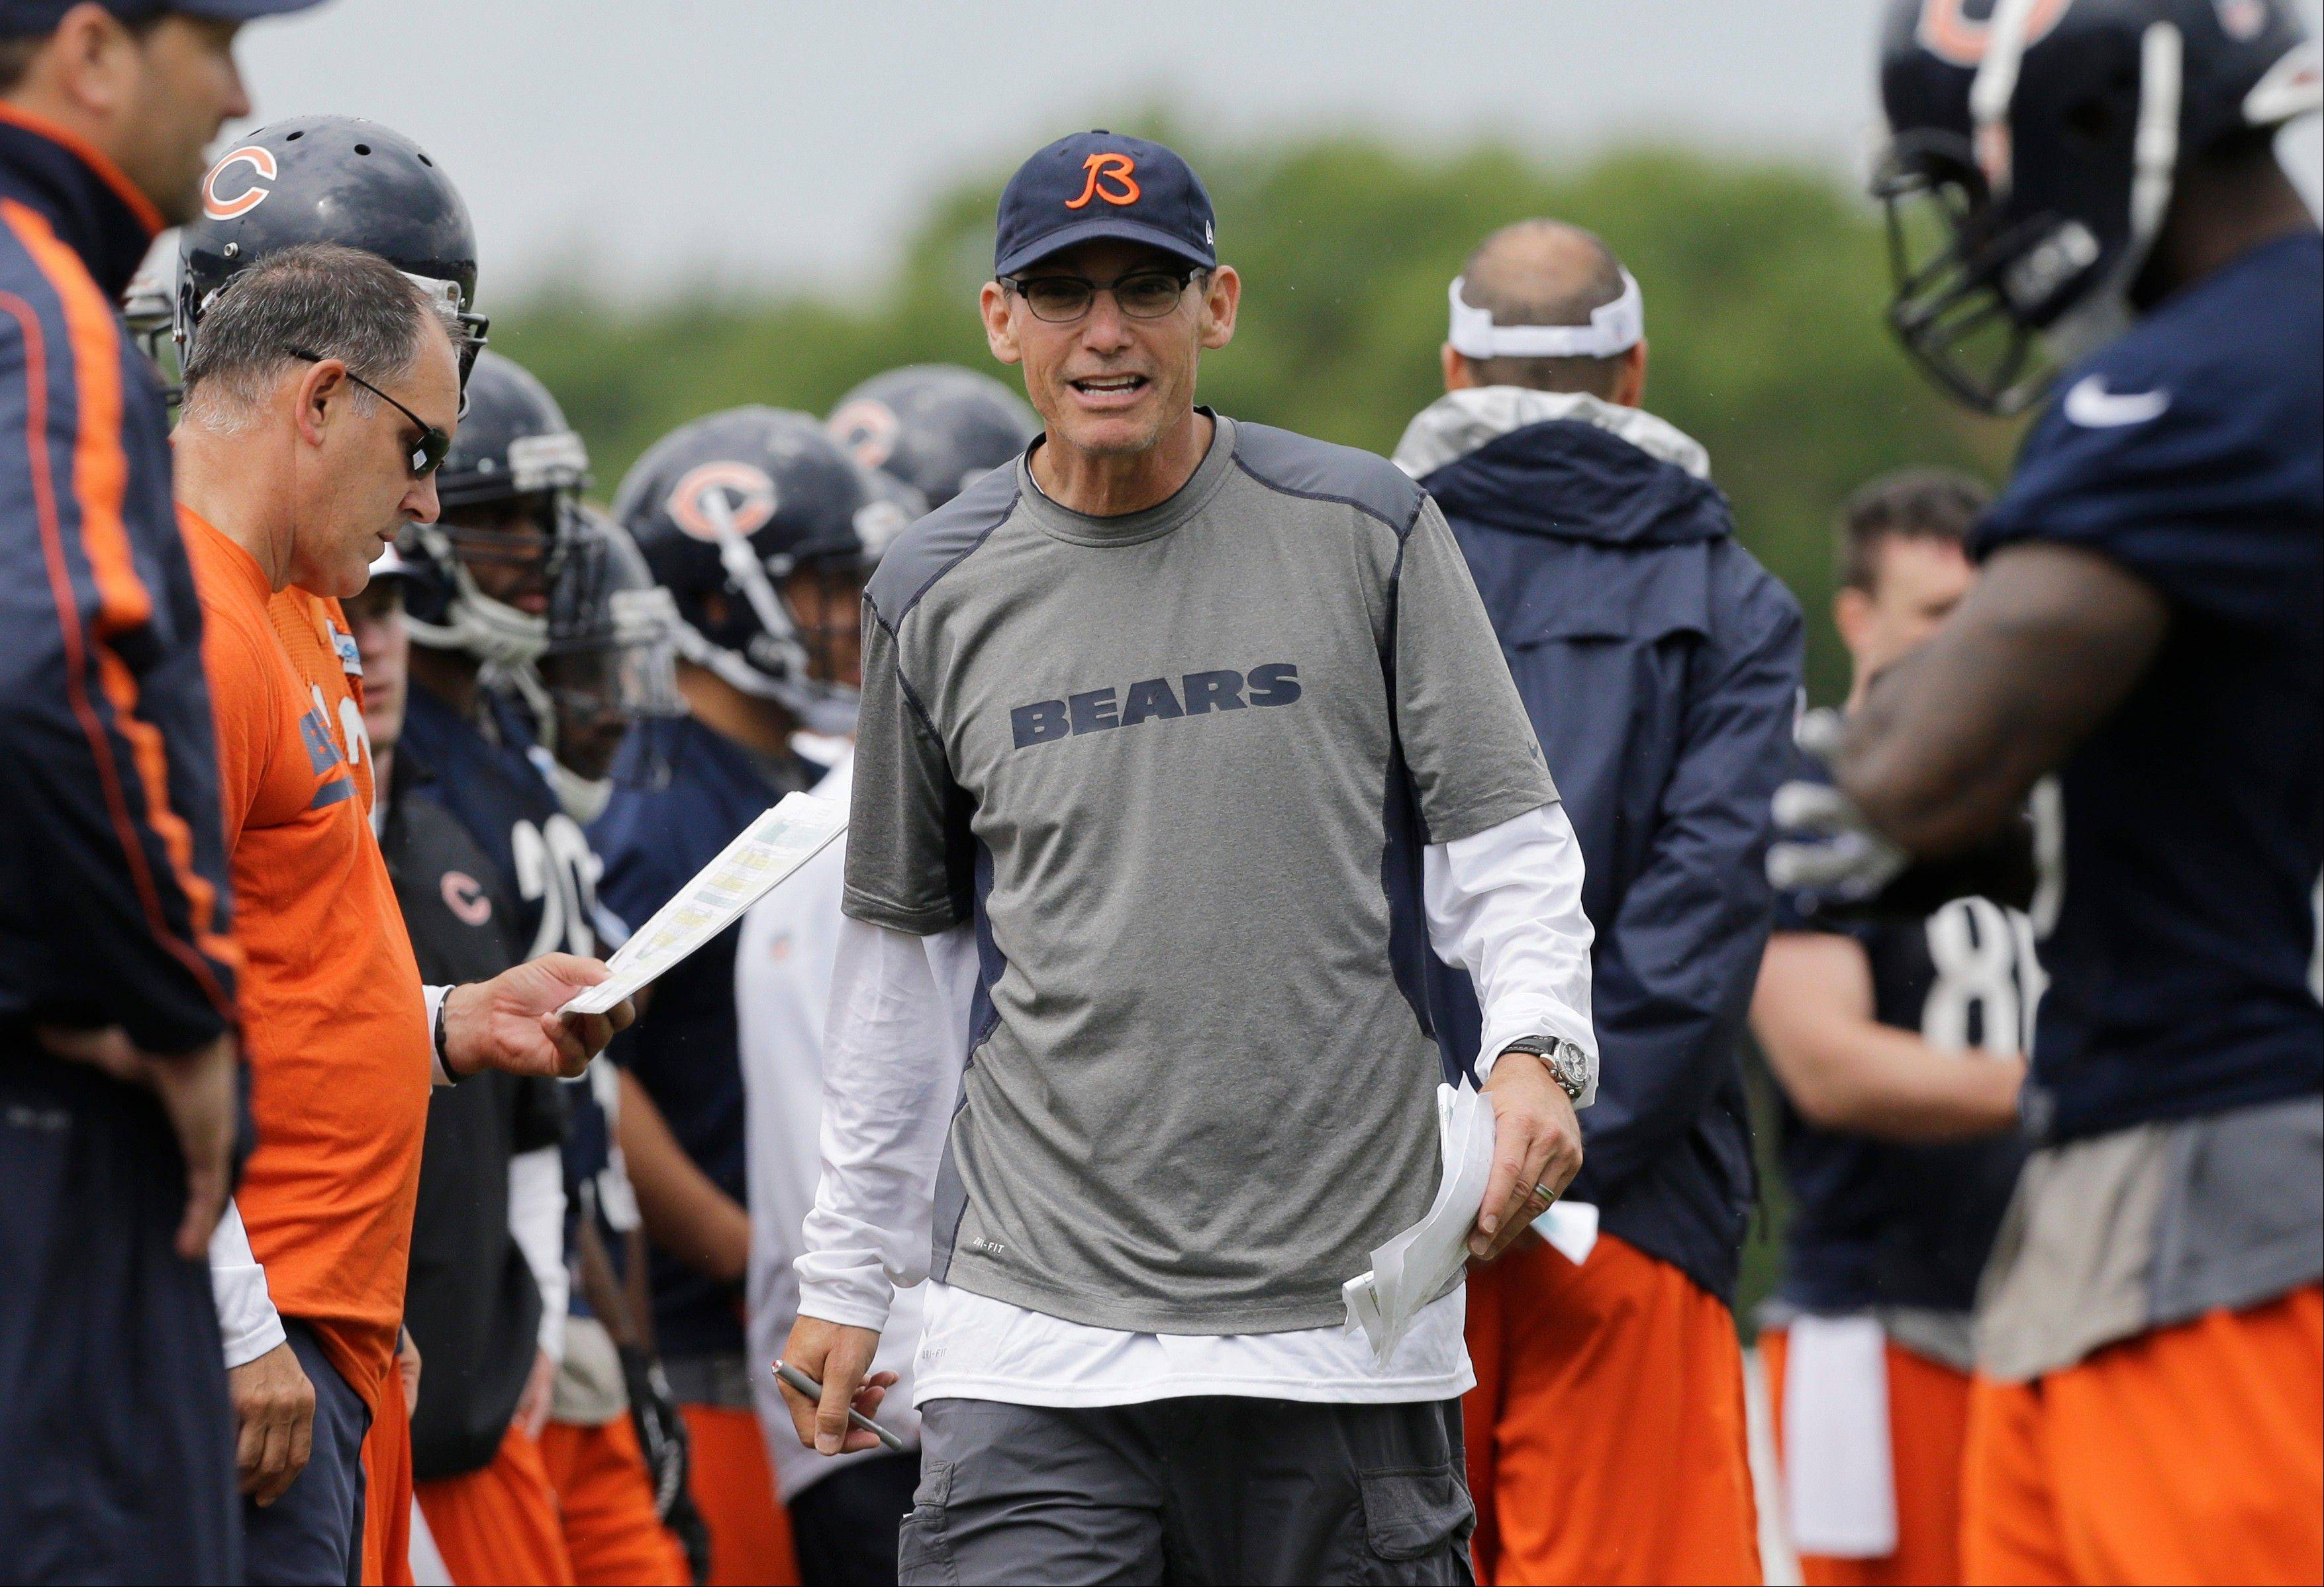 As the Chicago Bears opened training camp Friday in Bourbonnais, two key members of the team�s defense (linebacker Lance Briggs and cornerback Charles Tillman) say they�ve moved on after Lovie Smith�s firing and are ready to embrace the new regime, led by head coach Marc Trestman, above.